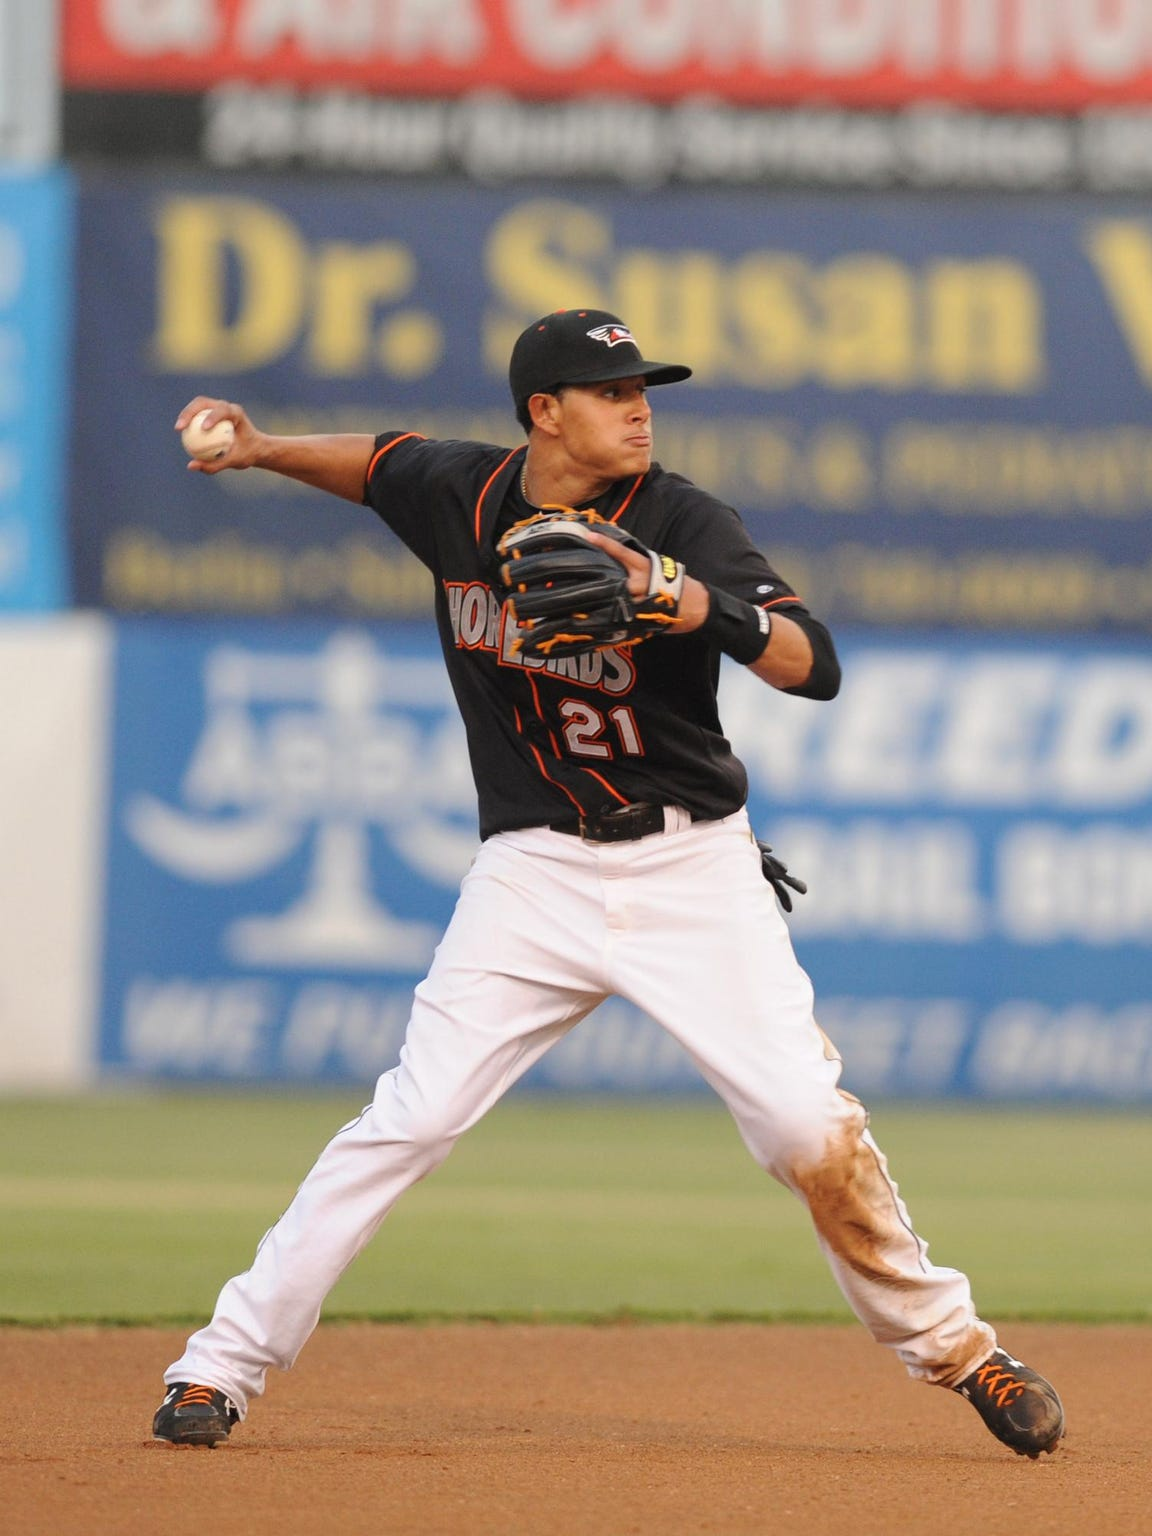 In 38 games for the Shorebirds in 2011, Manny Machado